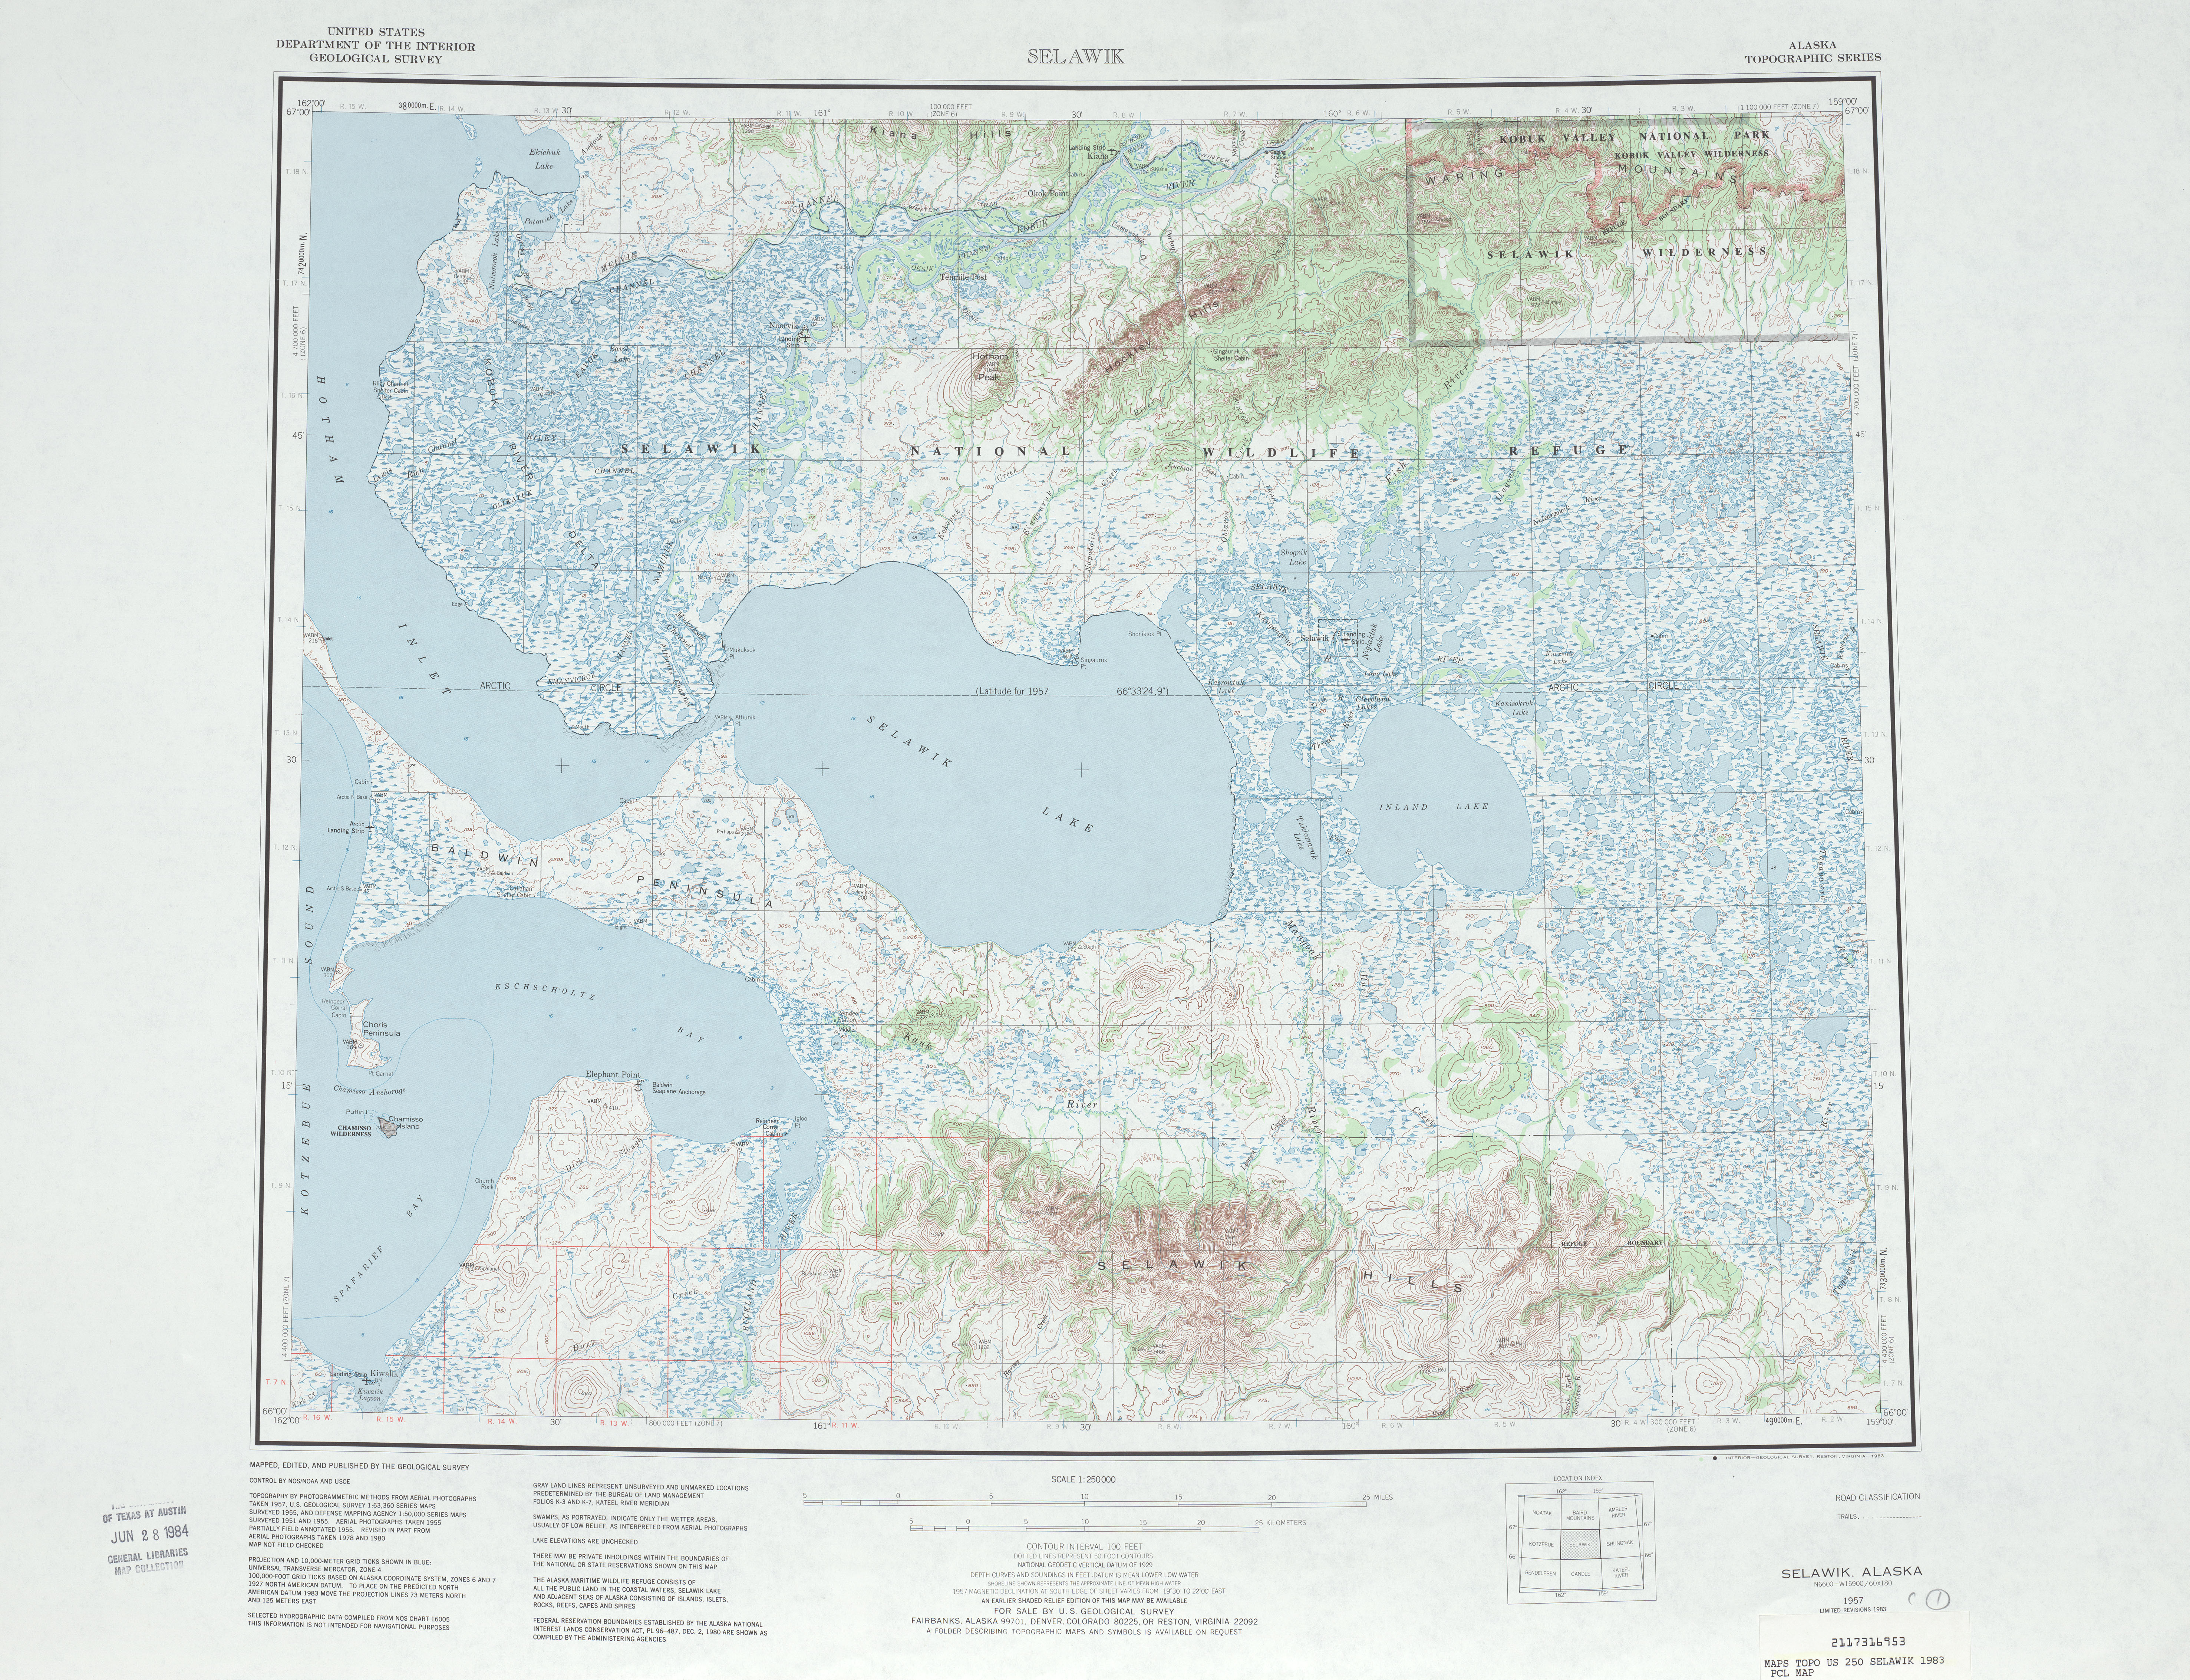 Selawik Topographic Map Sheet, United States 1983